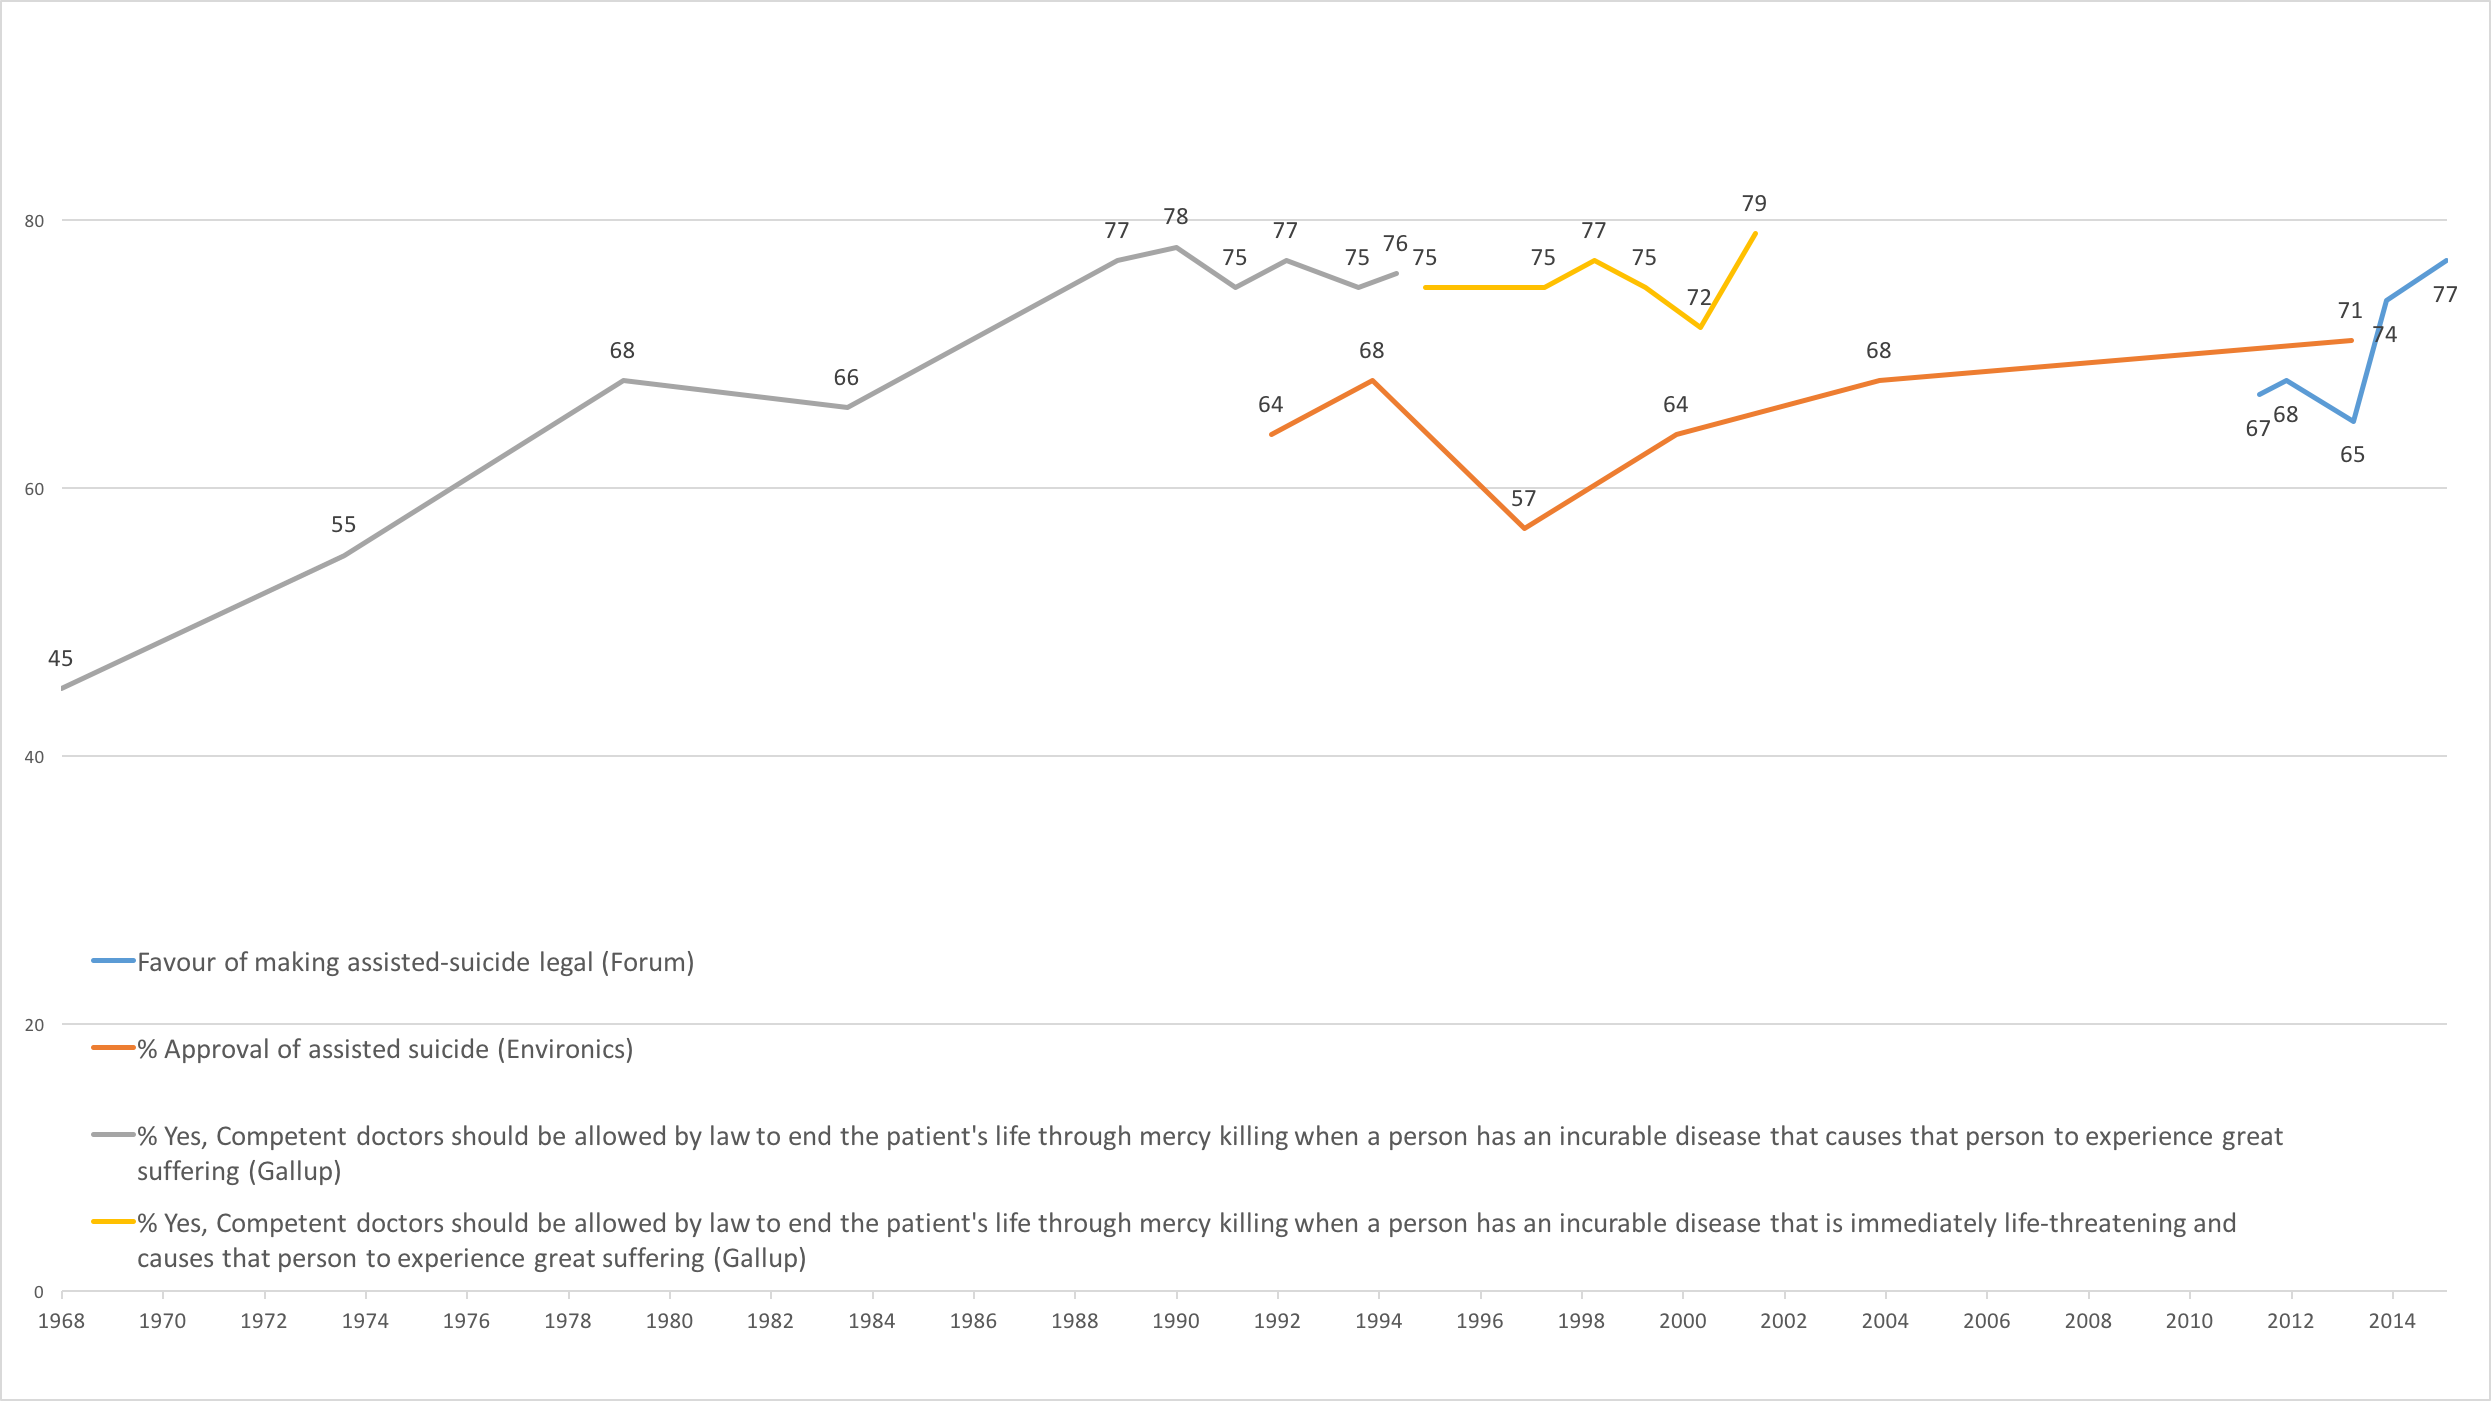 Public Support for Assisted Dying: The Limited Trend Data